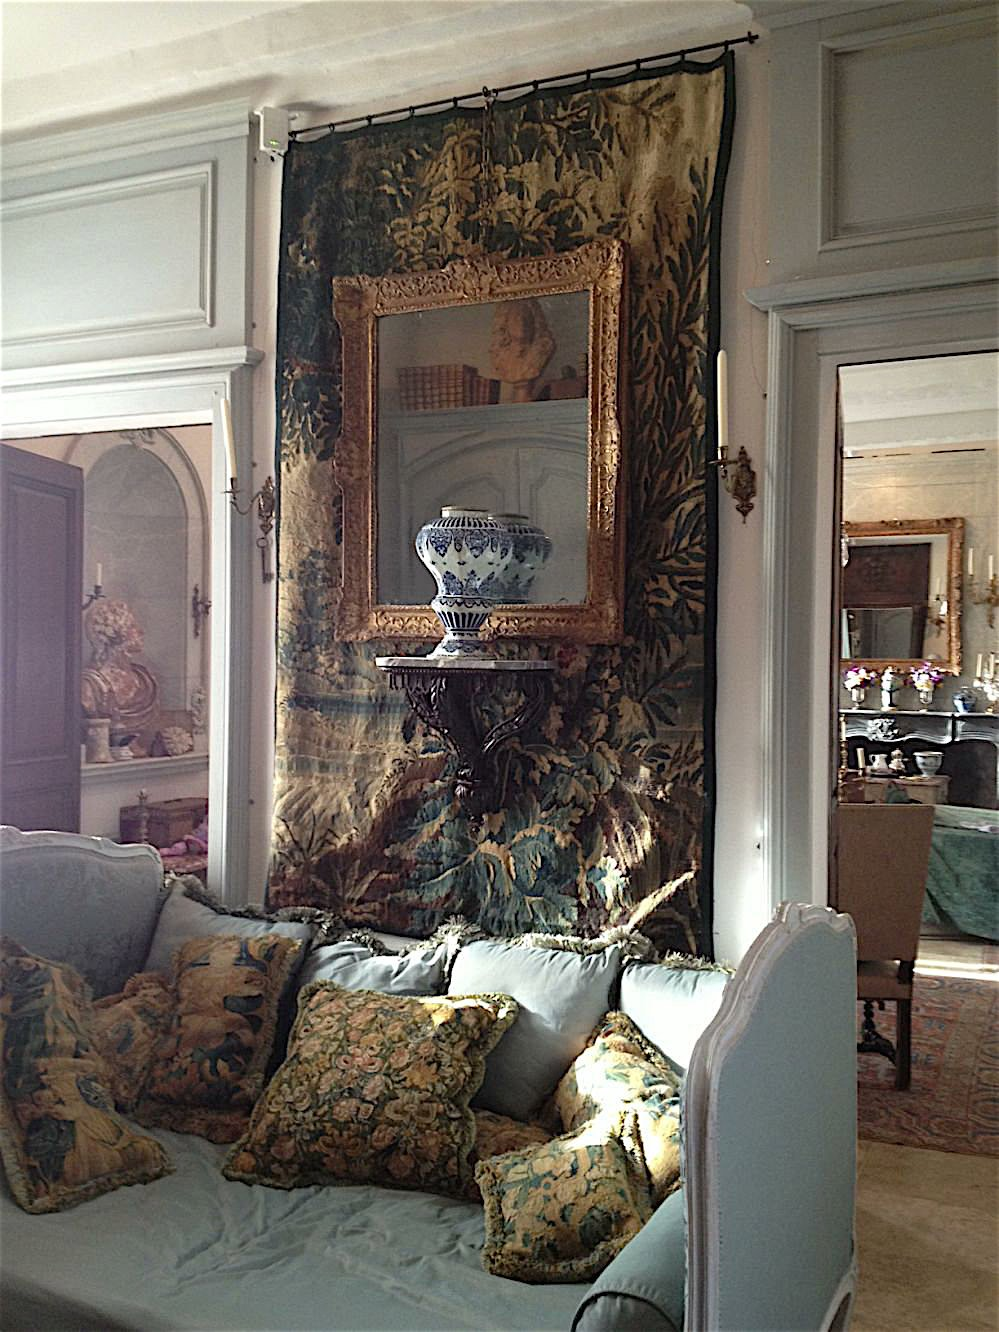 A residence in Provence, France - decorated by Au Vieux Paris Antiques